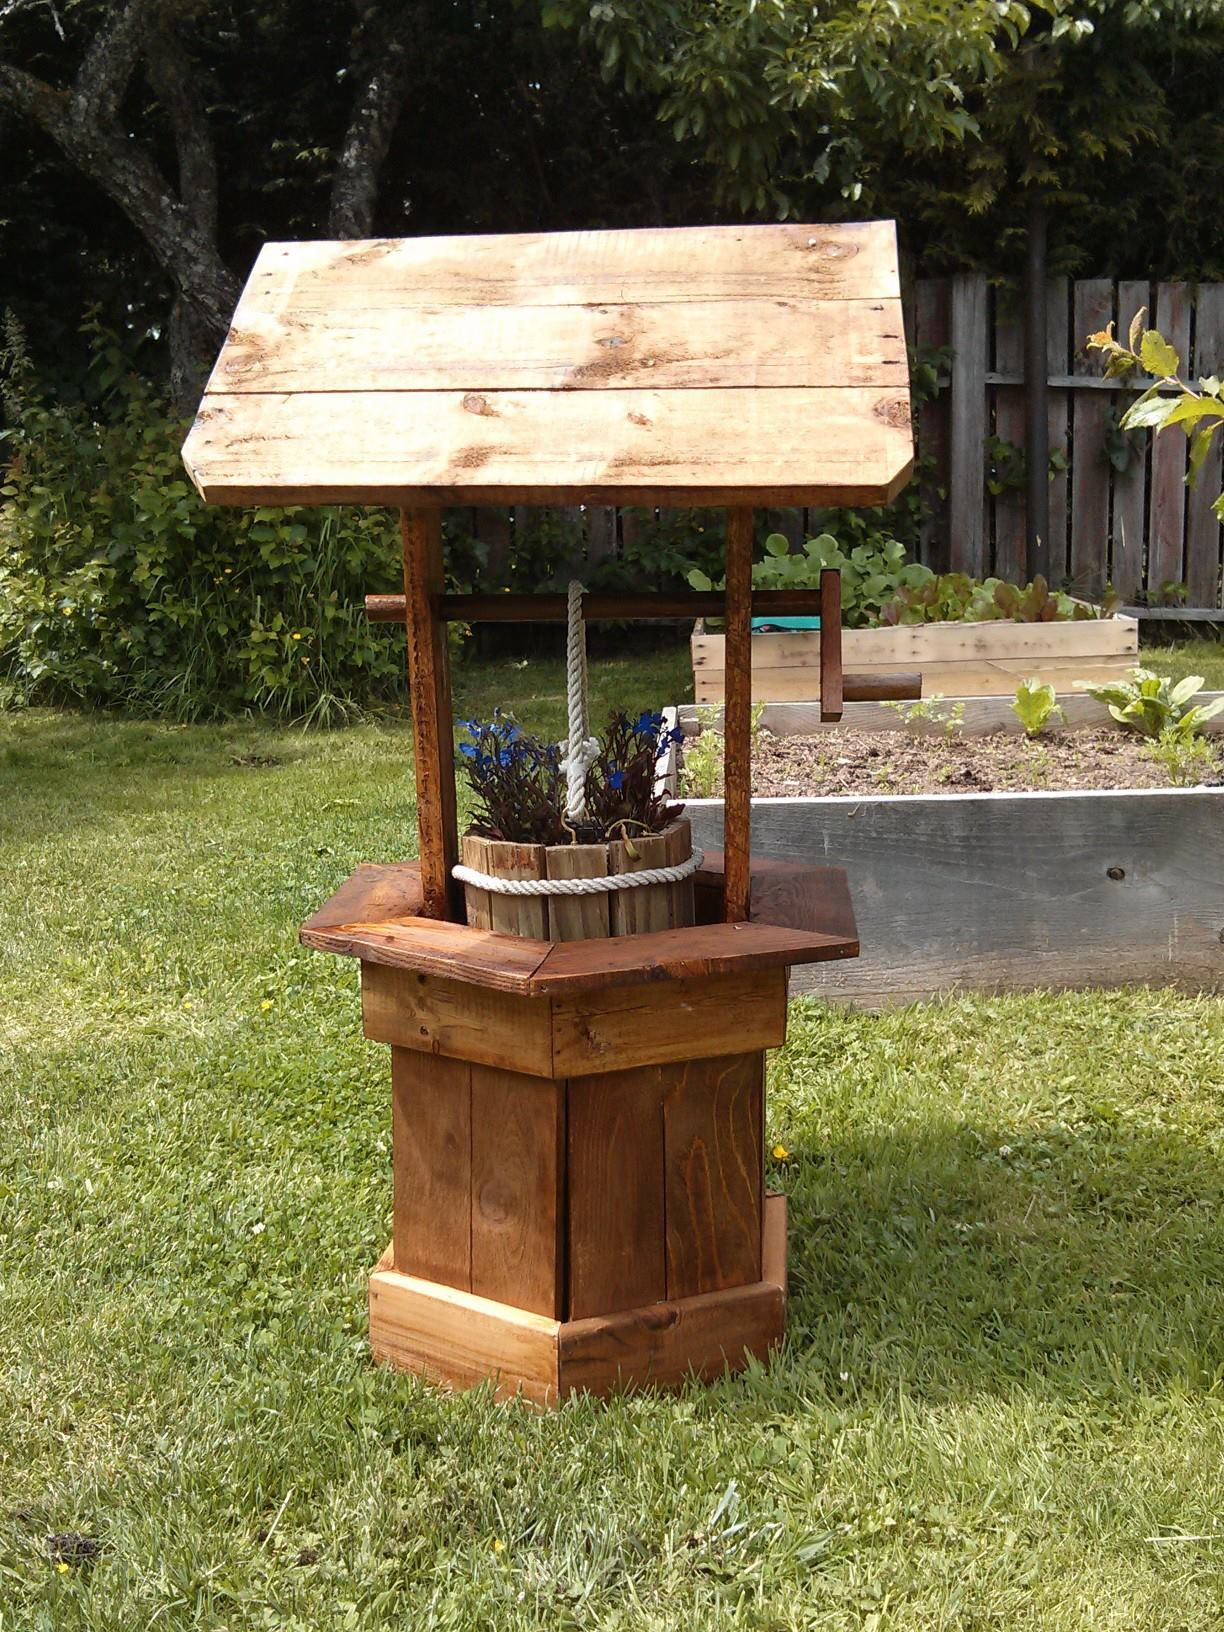 Desktop diy wedding wishing well instructions for tree laptop hd out of pallet wood ideas